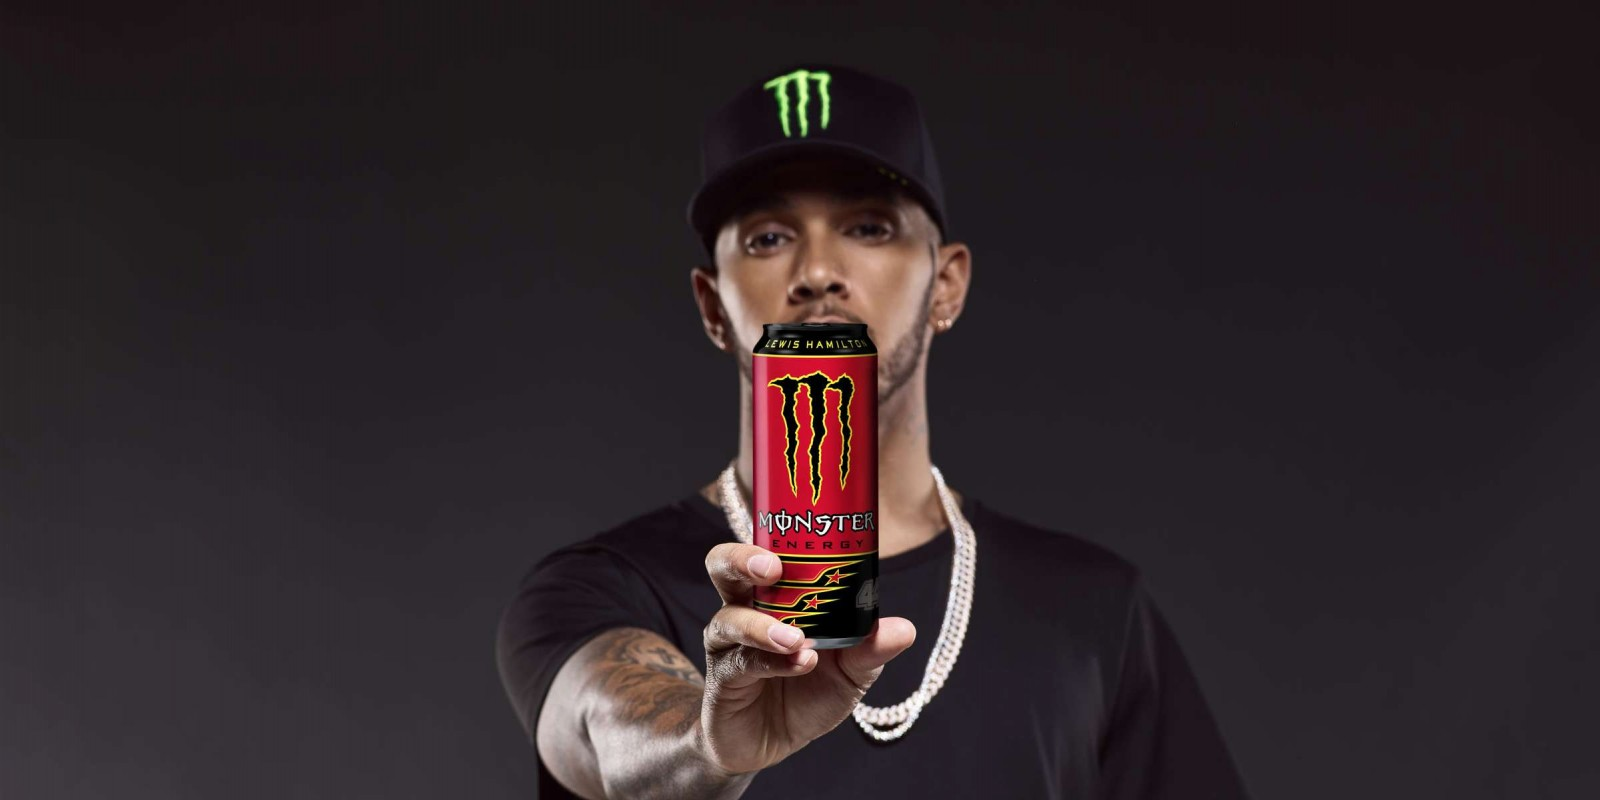 2017 lifestyle studio images of Lewis Hamilton shot by Nathan Gallagher , ***note that the below images for Nathan Gallagher are ok to be hosted on Monster media for a minimum of two years, or until the drink is sold, after which time we no longer have a